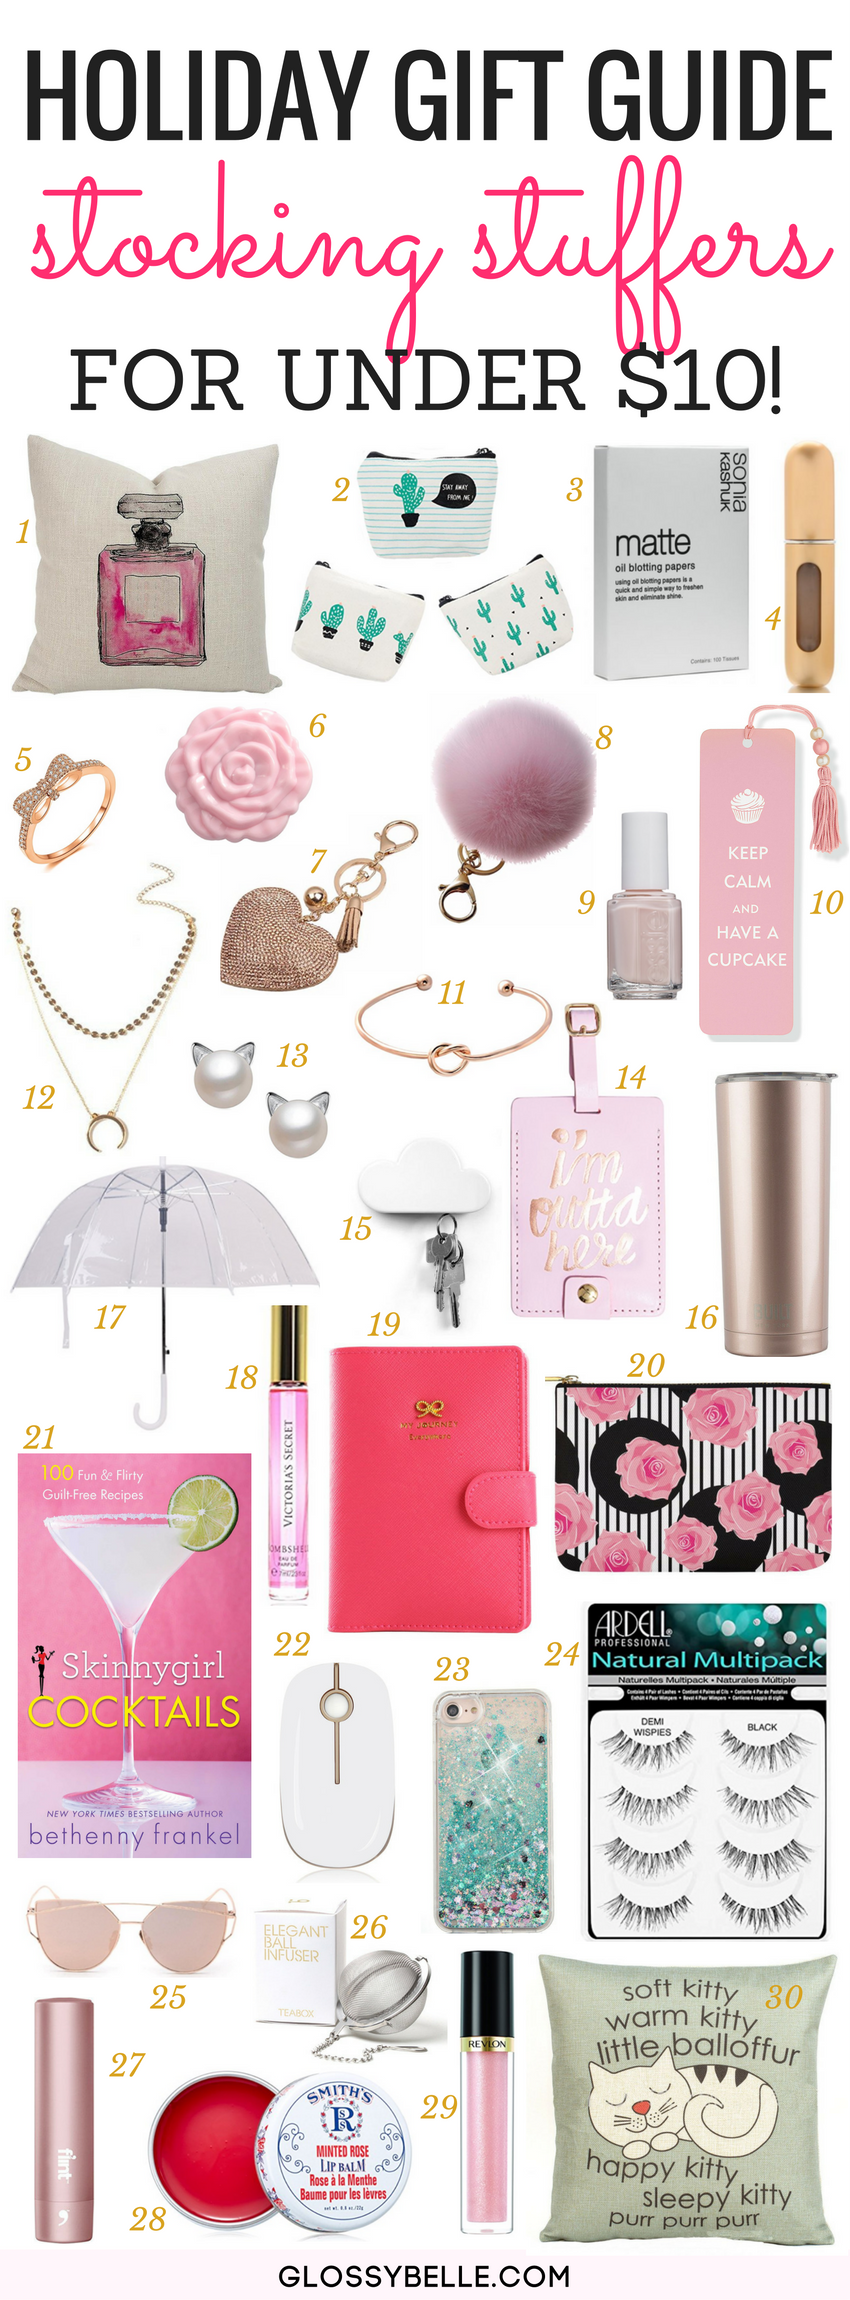 If you're looking to purchase a Christmas gift as a small token of appreciation, here are over 30 stocking stuffer ideas and they're all $10 or less! #giftguide #christmasgifts #giftideas #giftsforher #holidaygifts #stockingstuffers